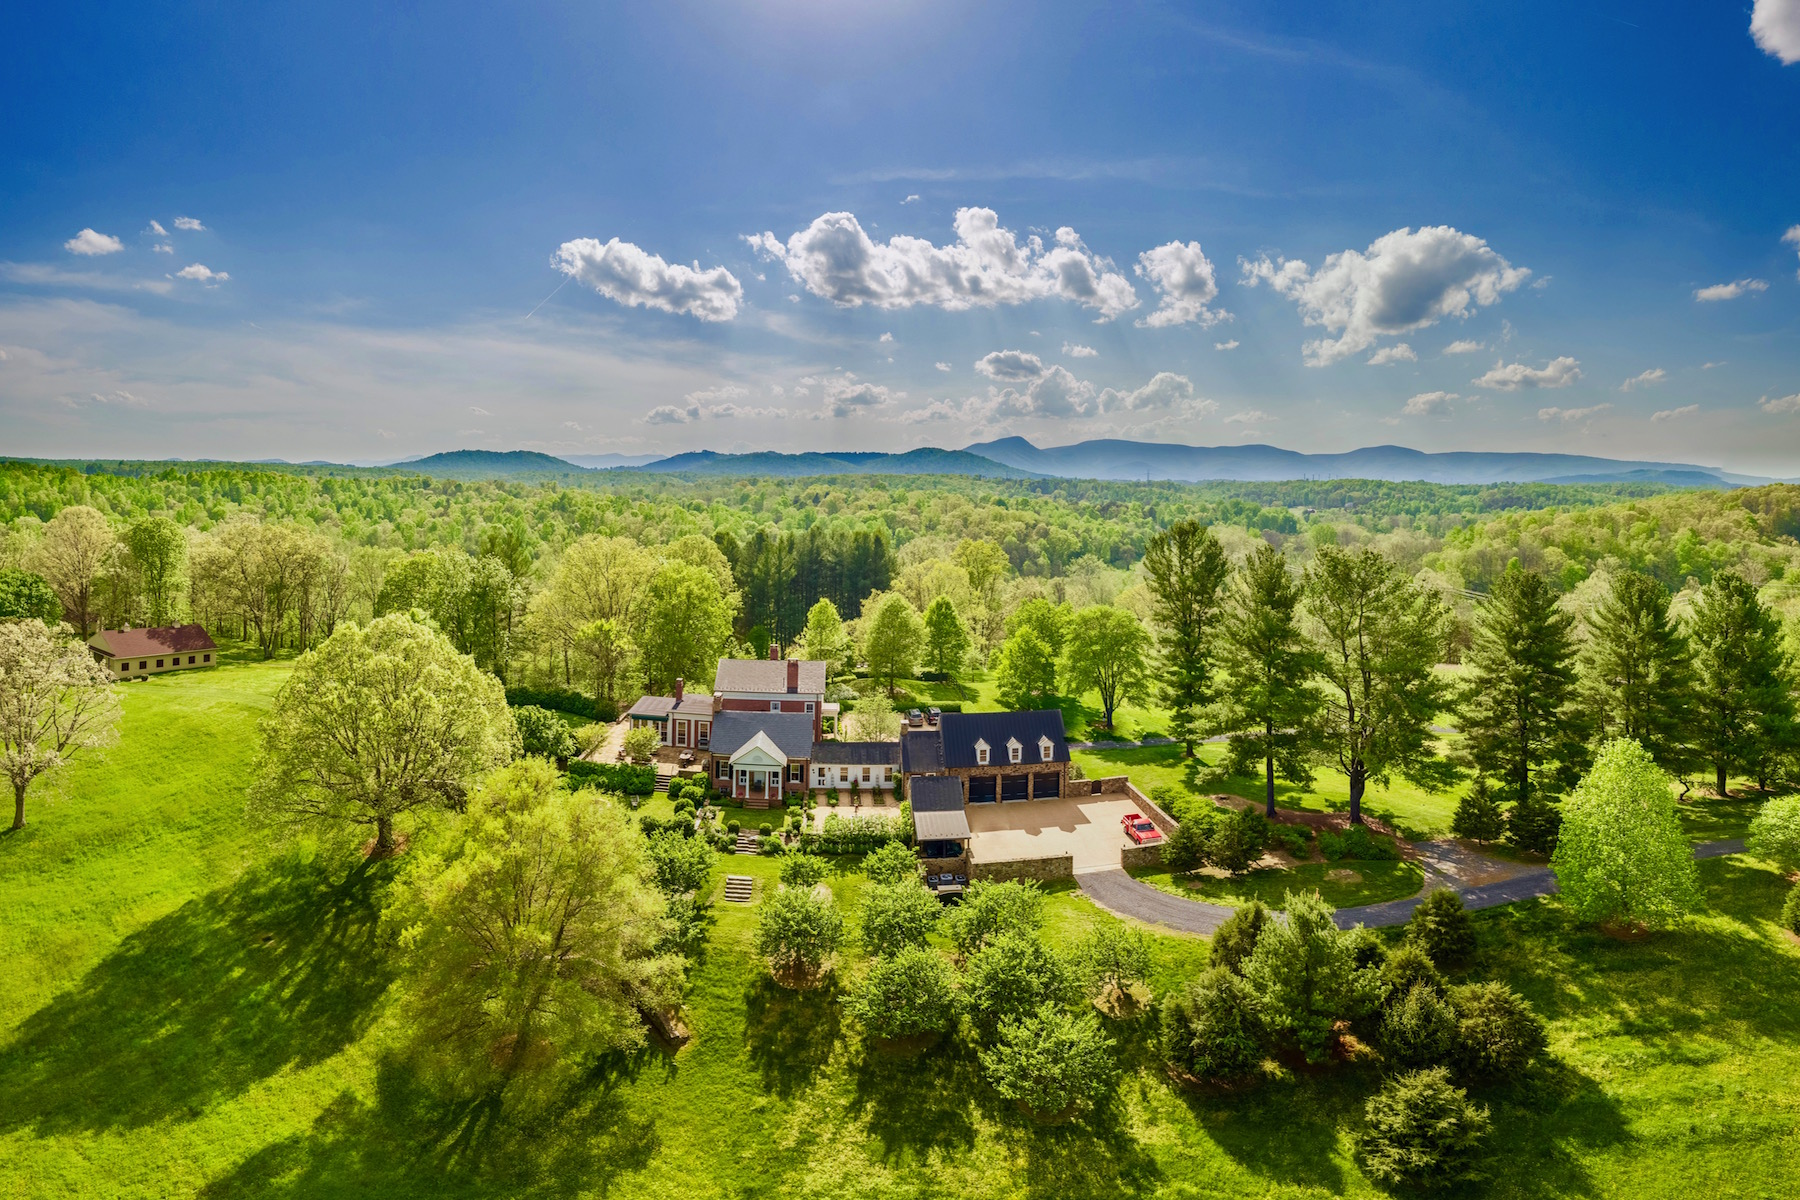 Single Family Home for Sale at Rock Ford Hume, Virginia 22639 United States